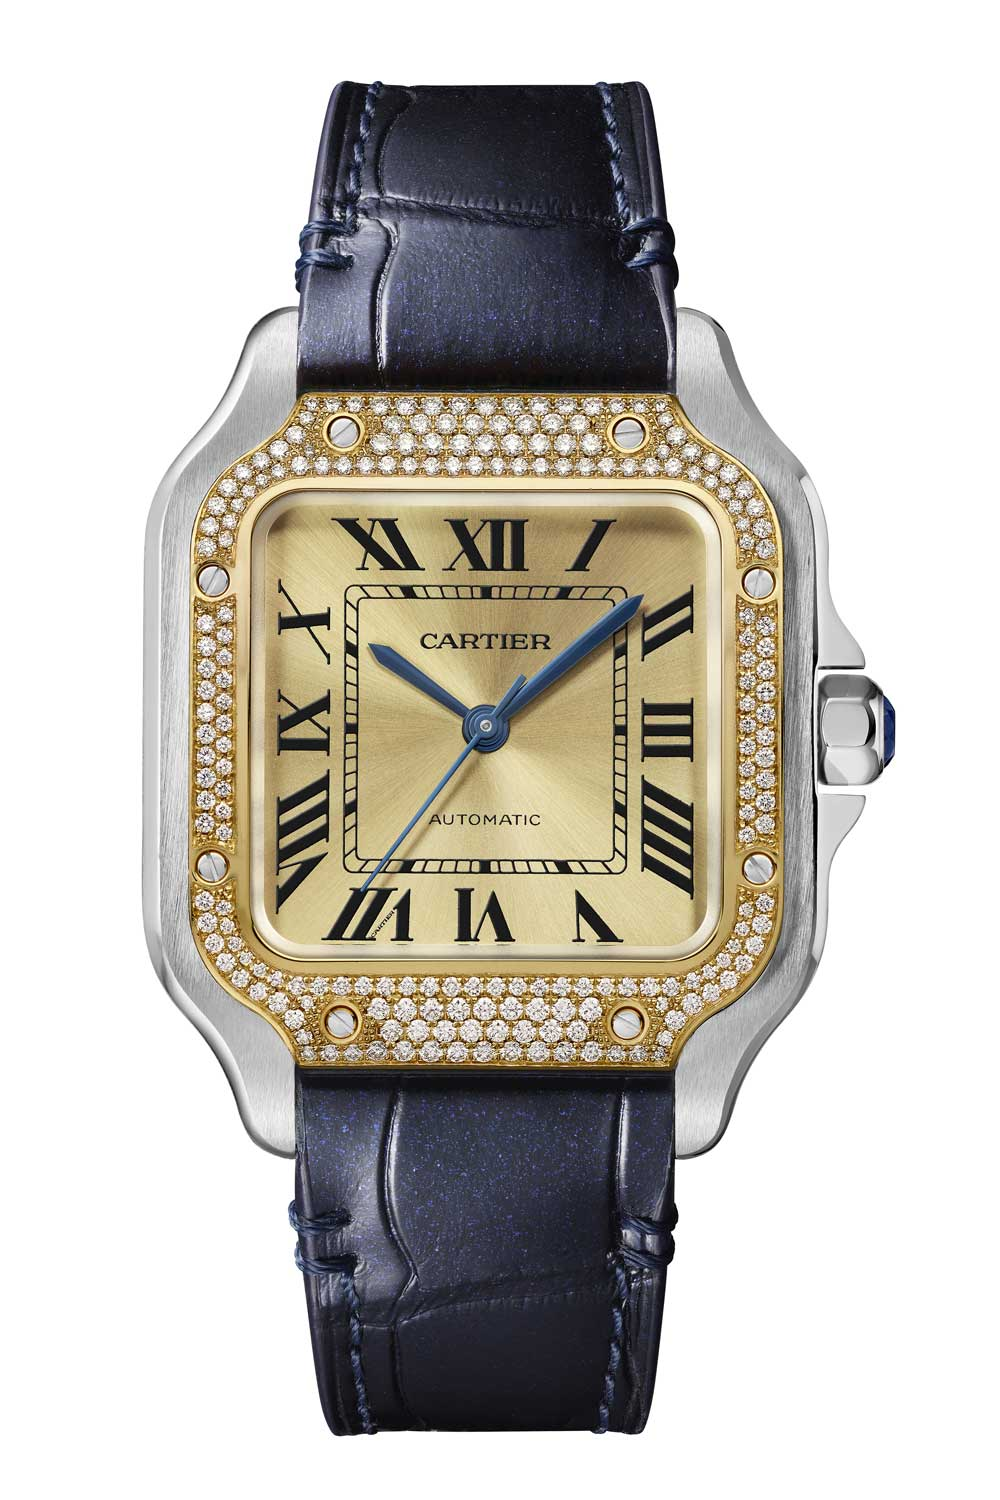 The watch comes on an interchangeable QuickSwitch steel bracelet and alligator leather strap